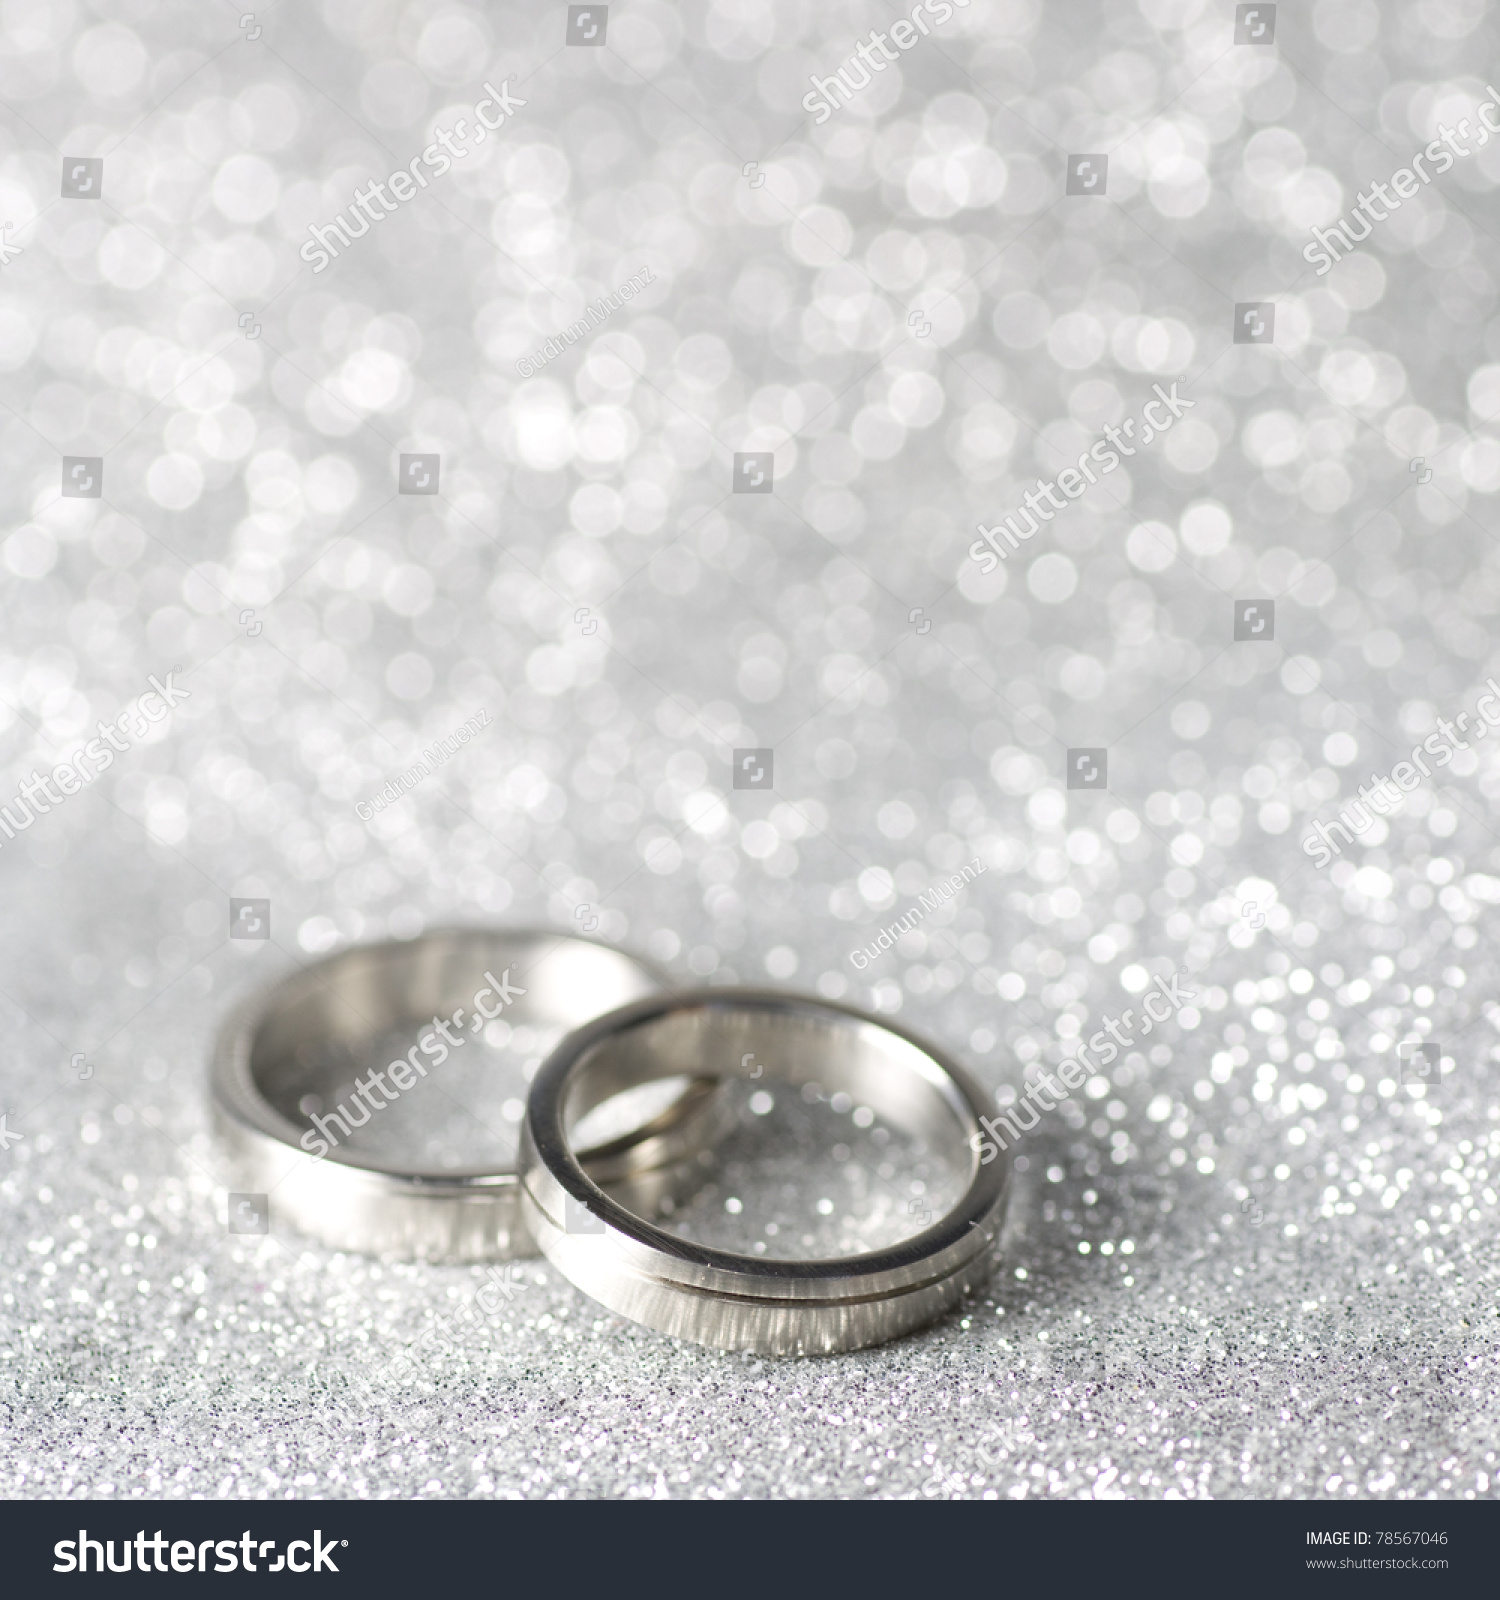 Wedding Rings On Silver Background Stock Photo Royalty Free